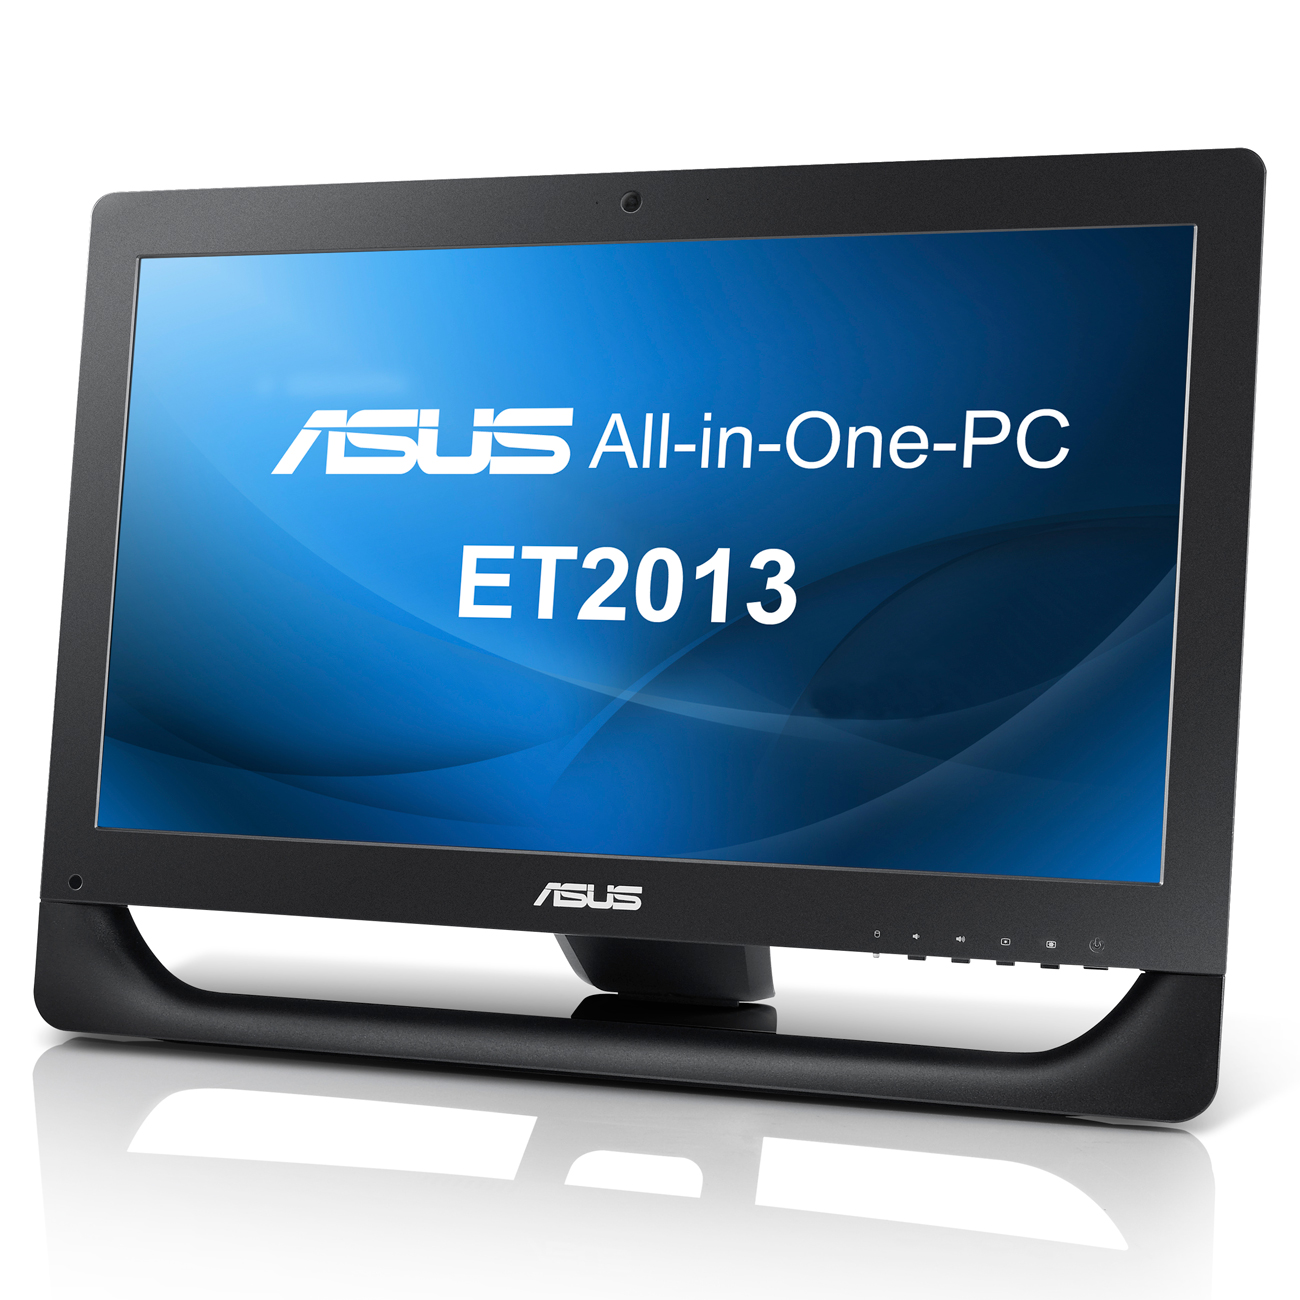 Vente De Bureau Professionnel Asus All-in-one Pc Et2013igki-b006k Noir - Pc De Bureau